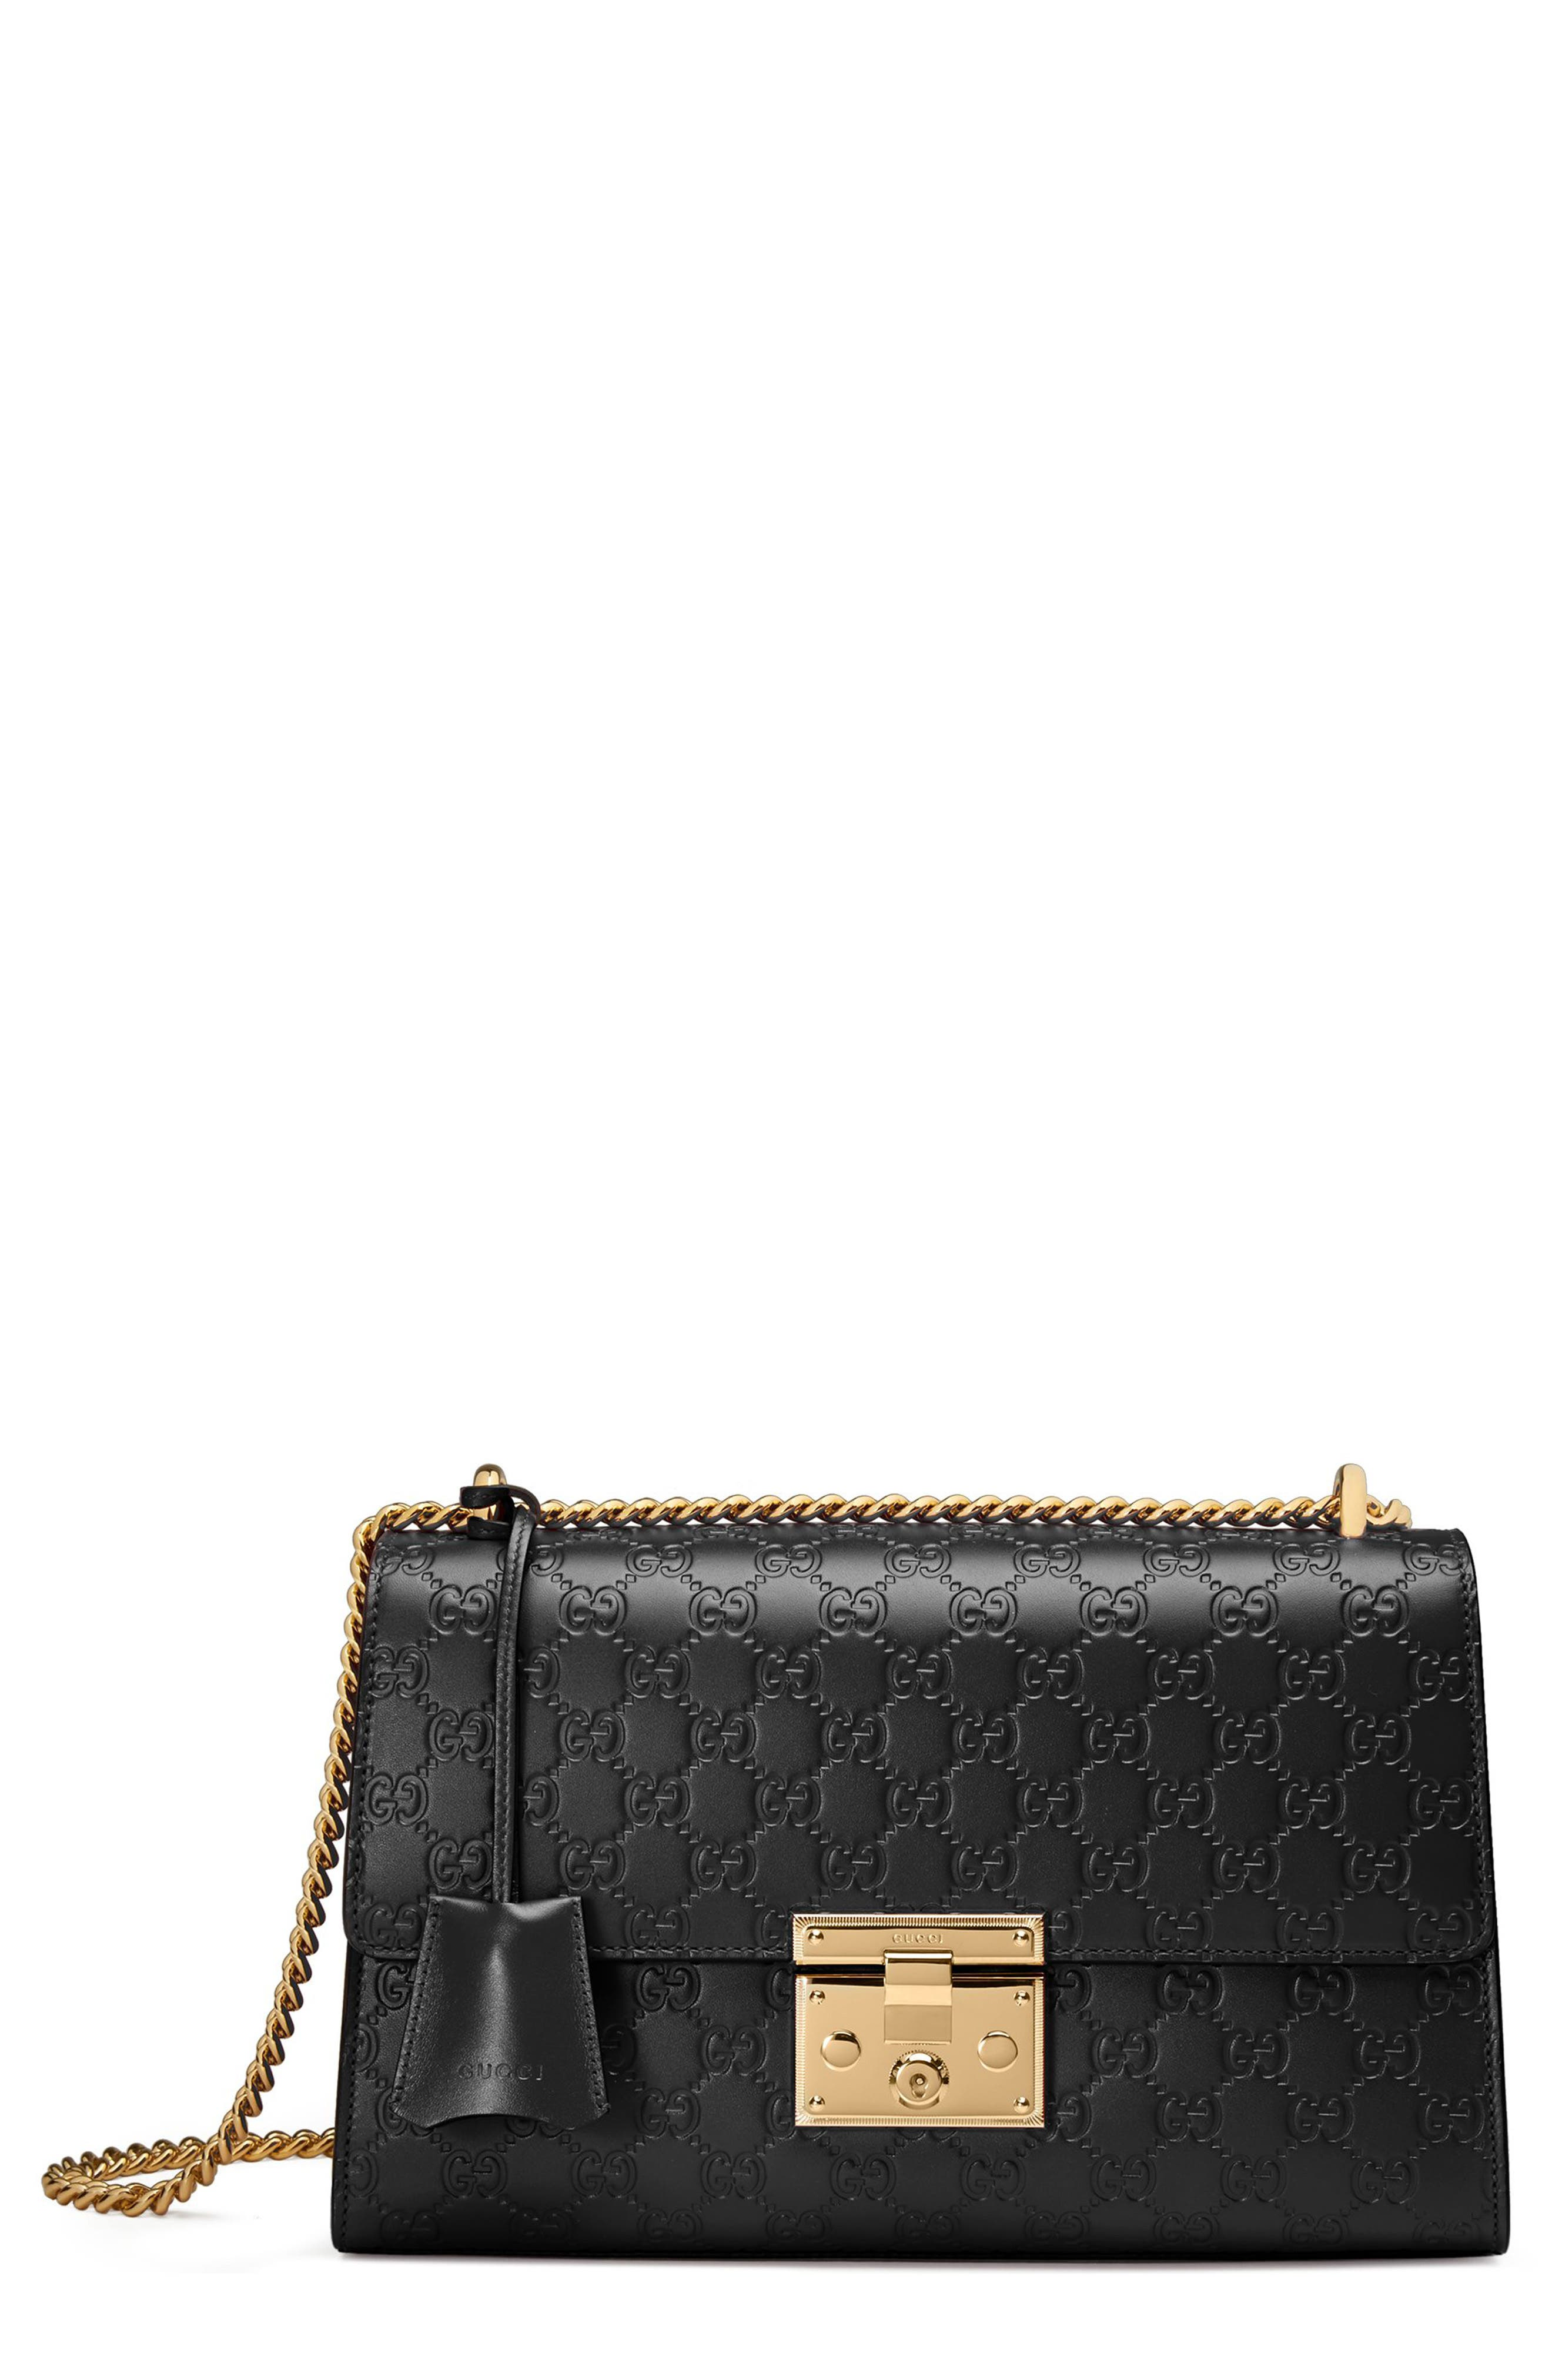 GUCCI Medium Padlock Signature Leather Shoulder Bag, Main, color, NERO